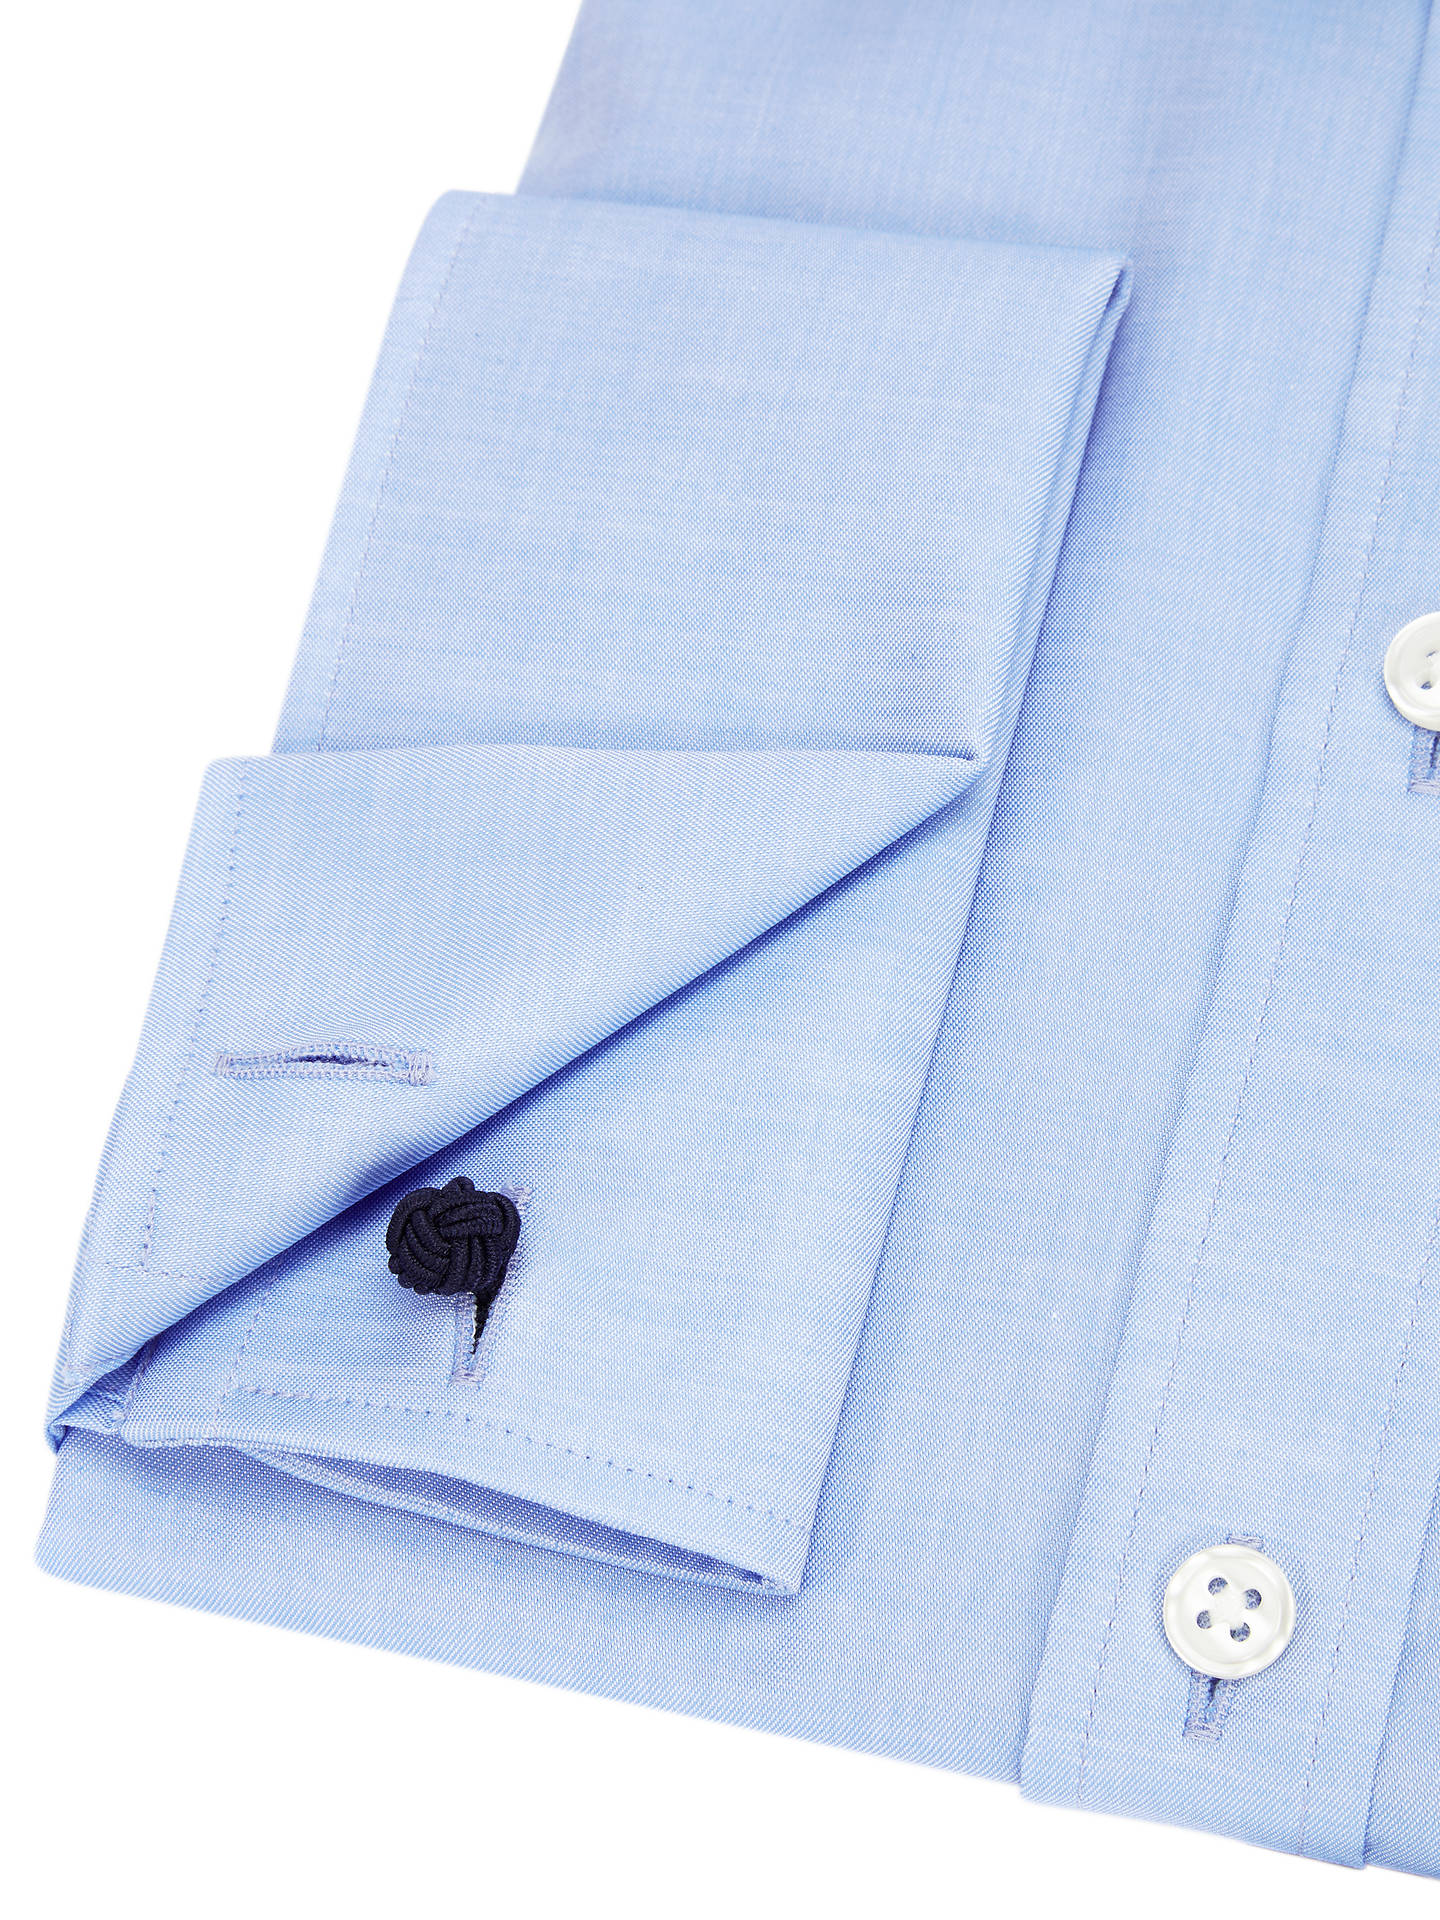 BuyJohn Lewis & Partners Non Iron Twill Double Cuff Tailored Fit Shirt, Blue, 15 Online at johnlewis.com